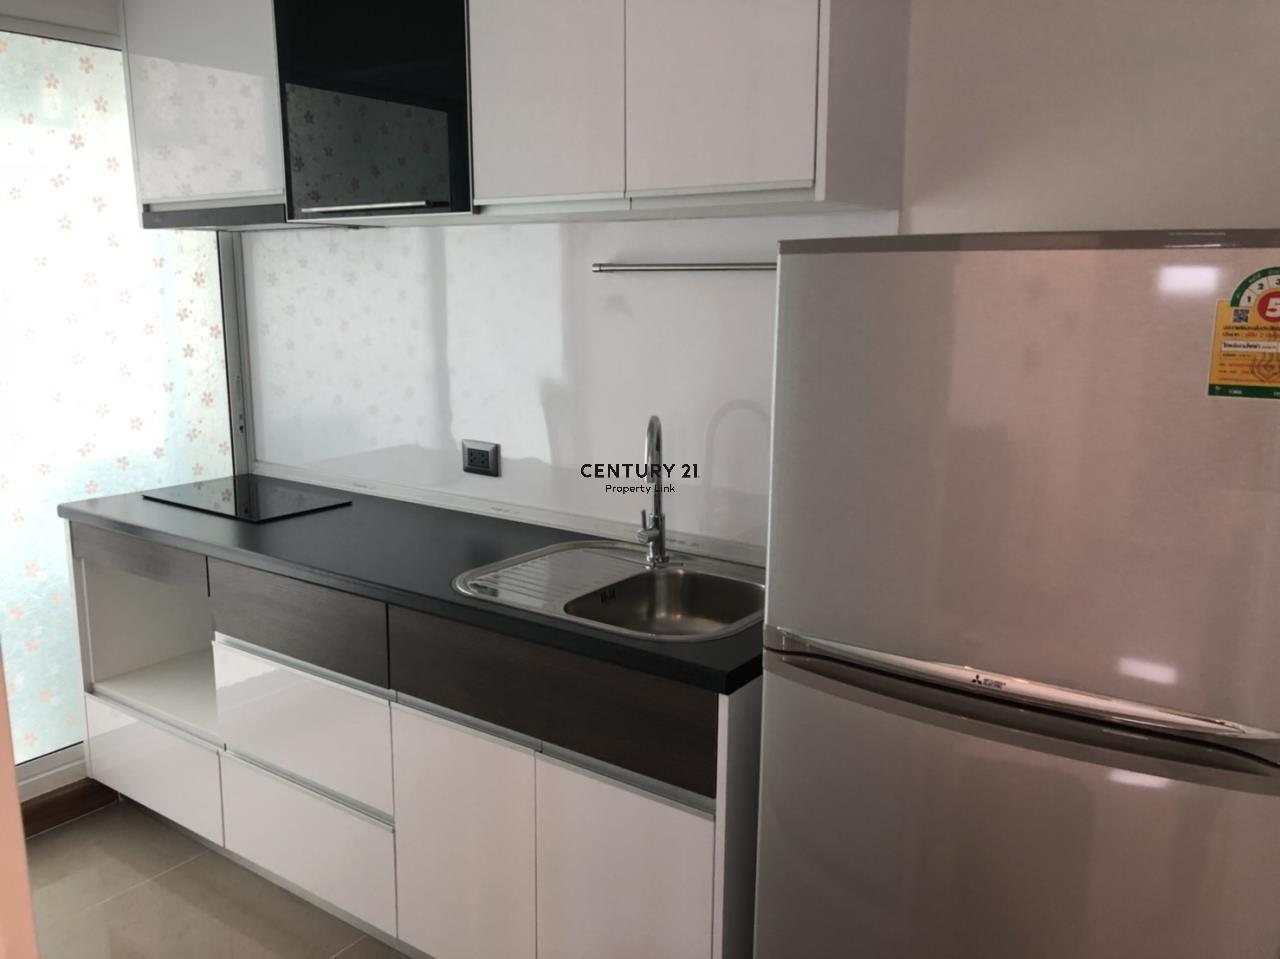 Century21 Property Link Agency's 39-CC-61279 Supalai Wellington2 Room For Rent 2 Bedroom Huai Khwang  Near MRT Thailand Cultural Centre  Rental price 30,000THB/ m. 6